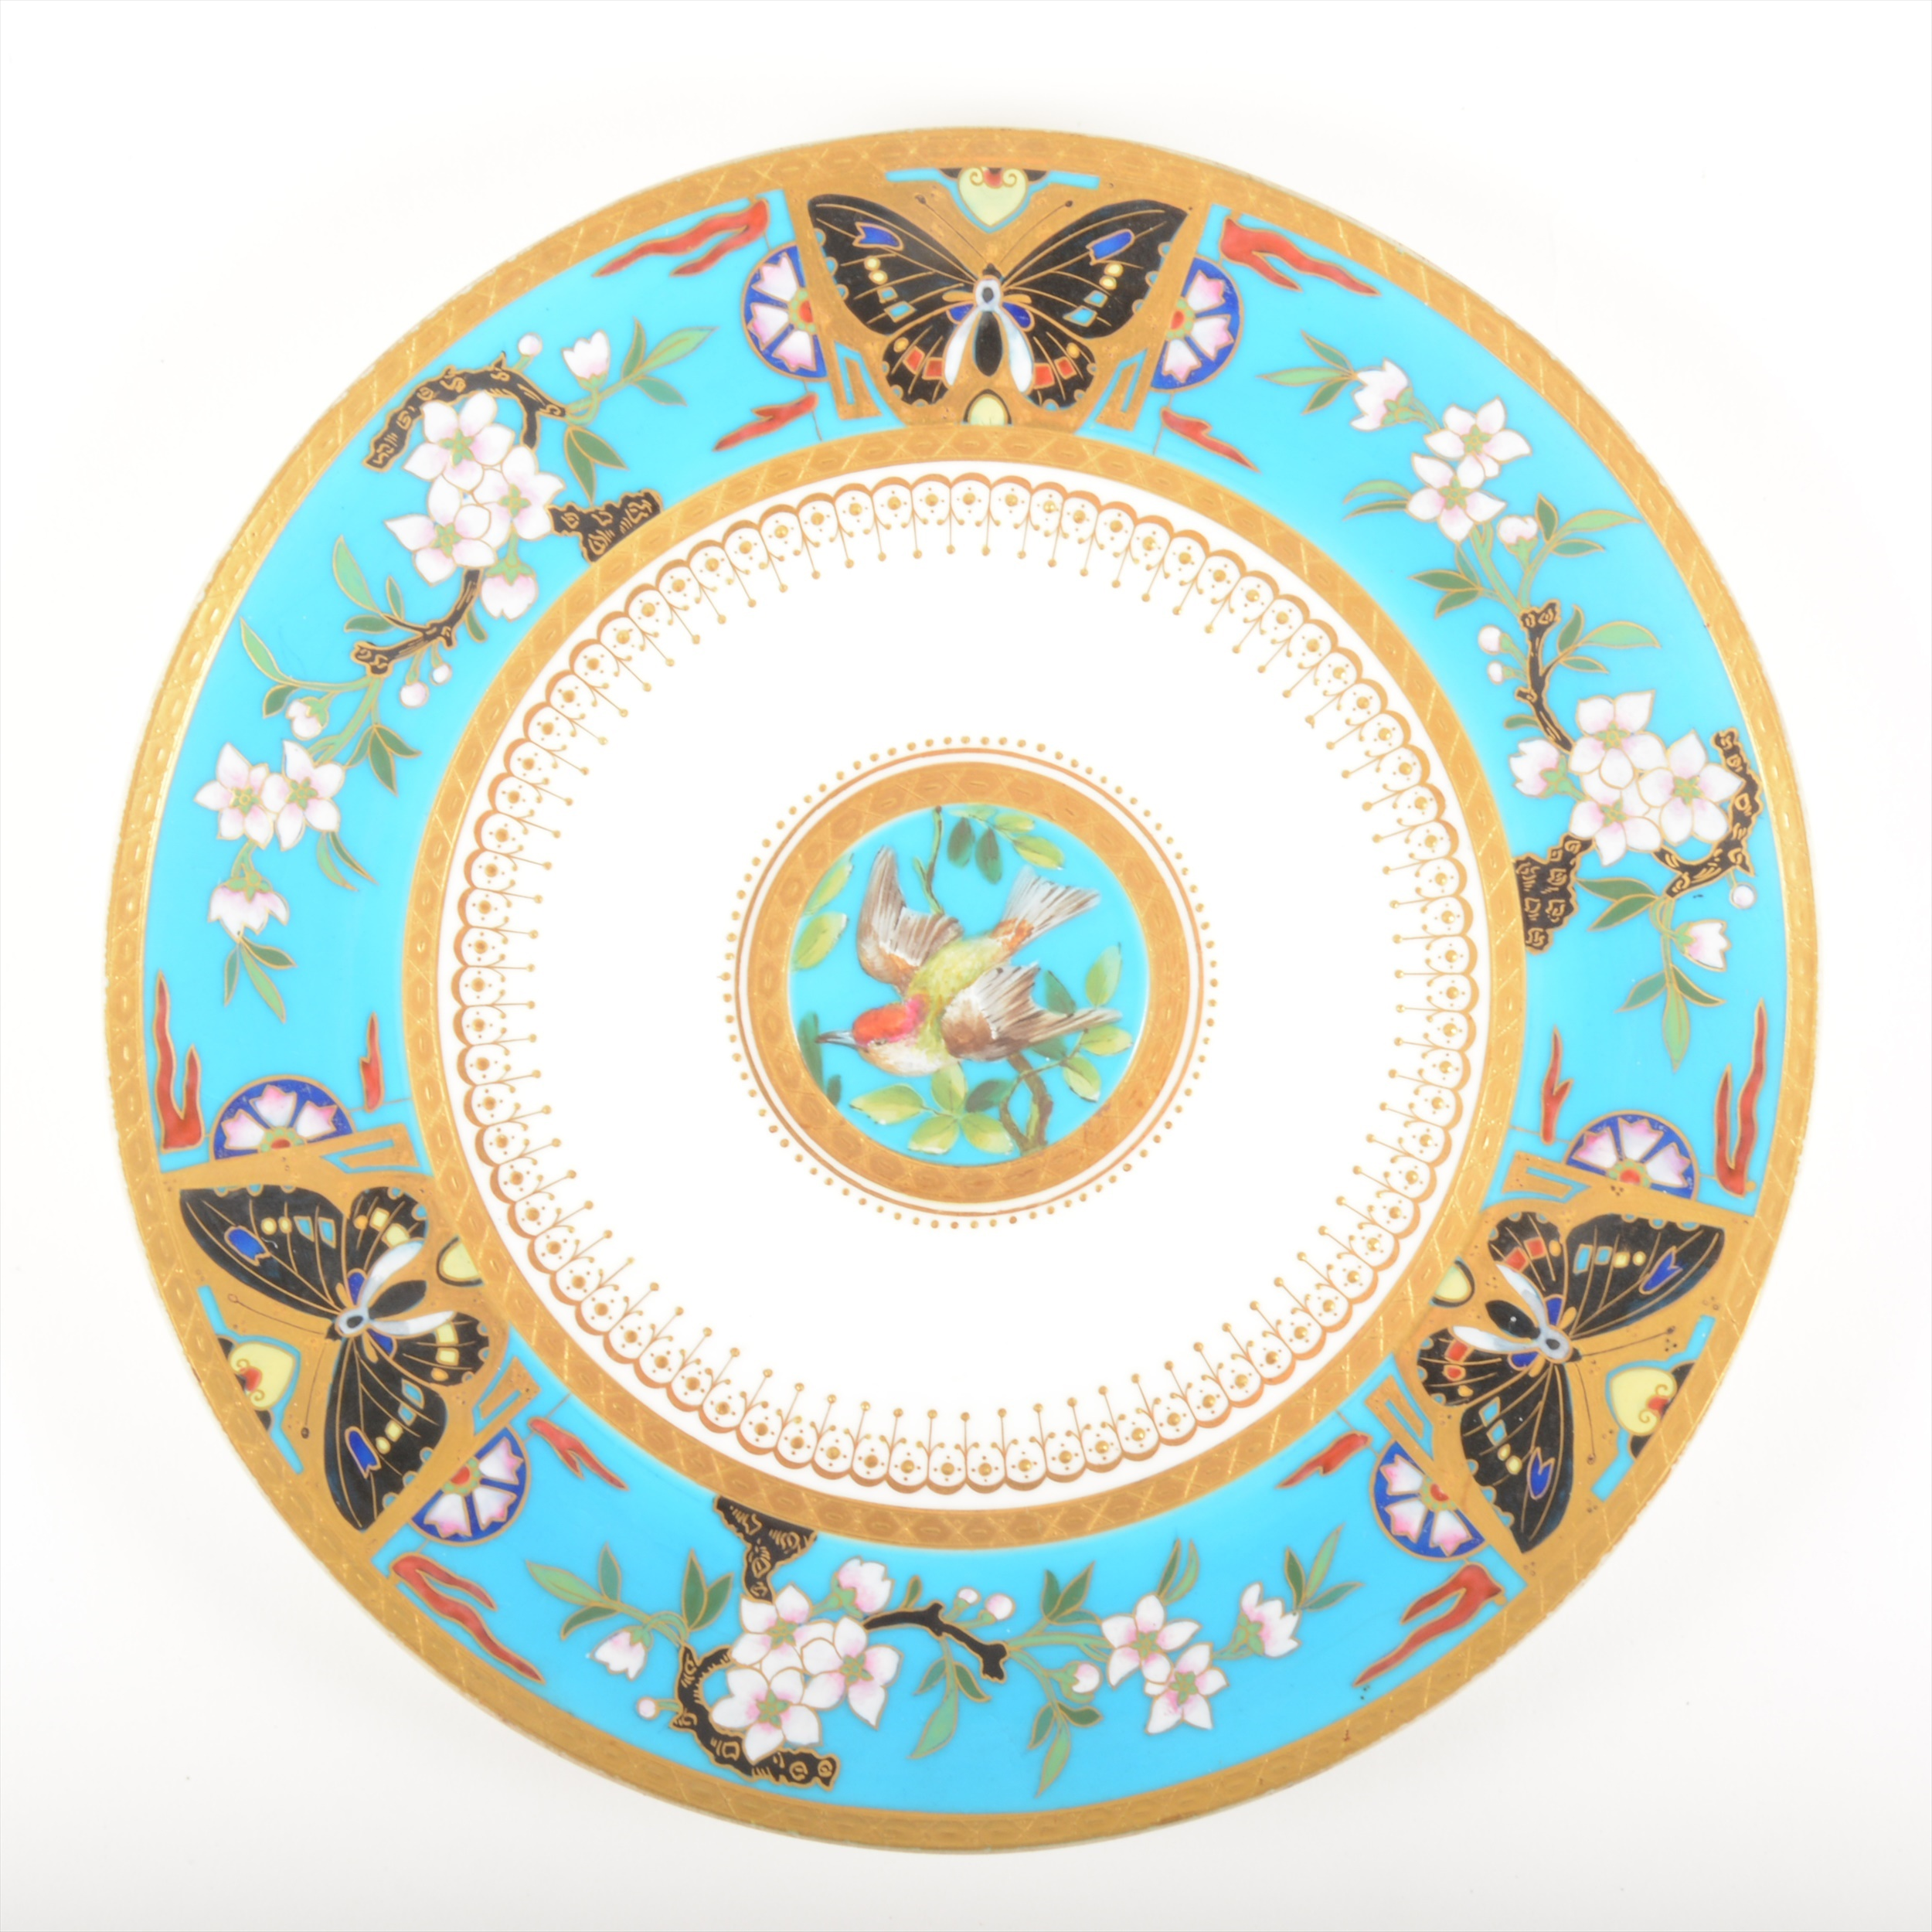 A Minton cabinet plate, attributed to Dr Christopher Dresser